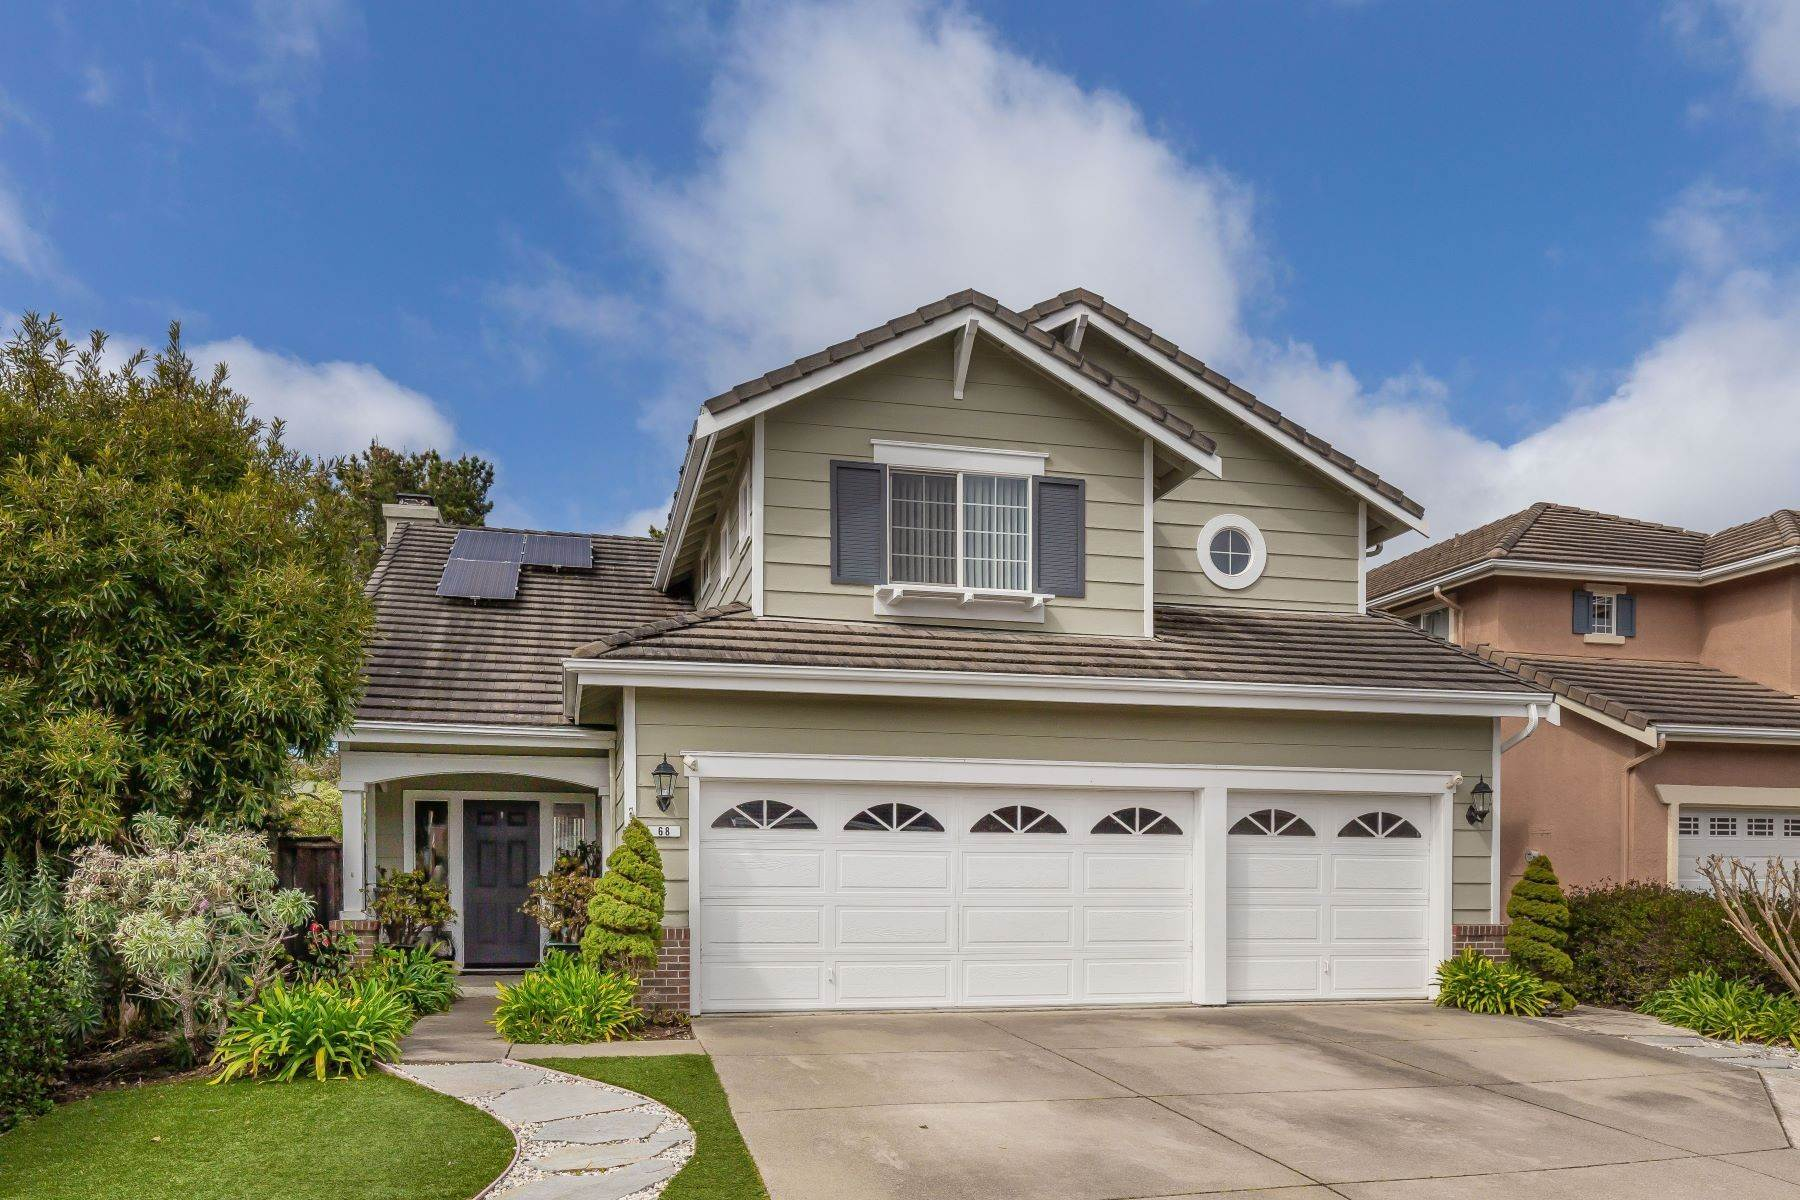 Single Family Homes for Sale at Pacifica Hills in Saltaire Development 68 Driftwood Circle Pacifica, California 94044 United States